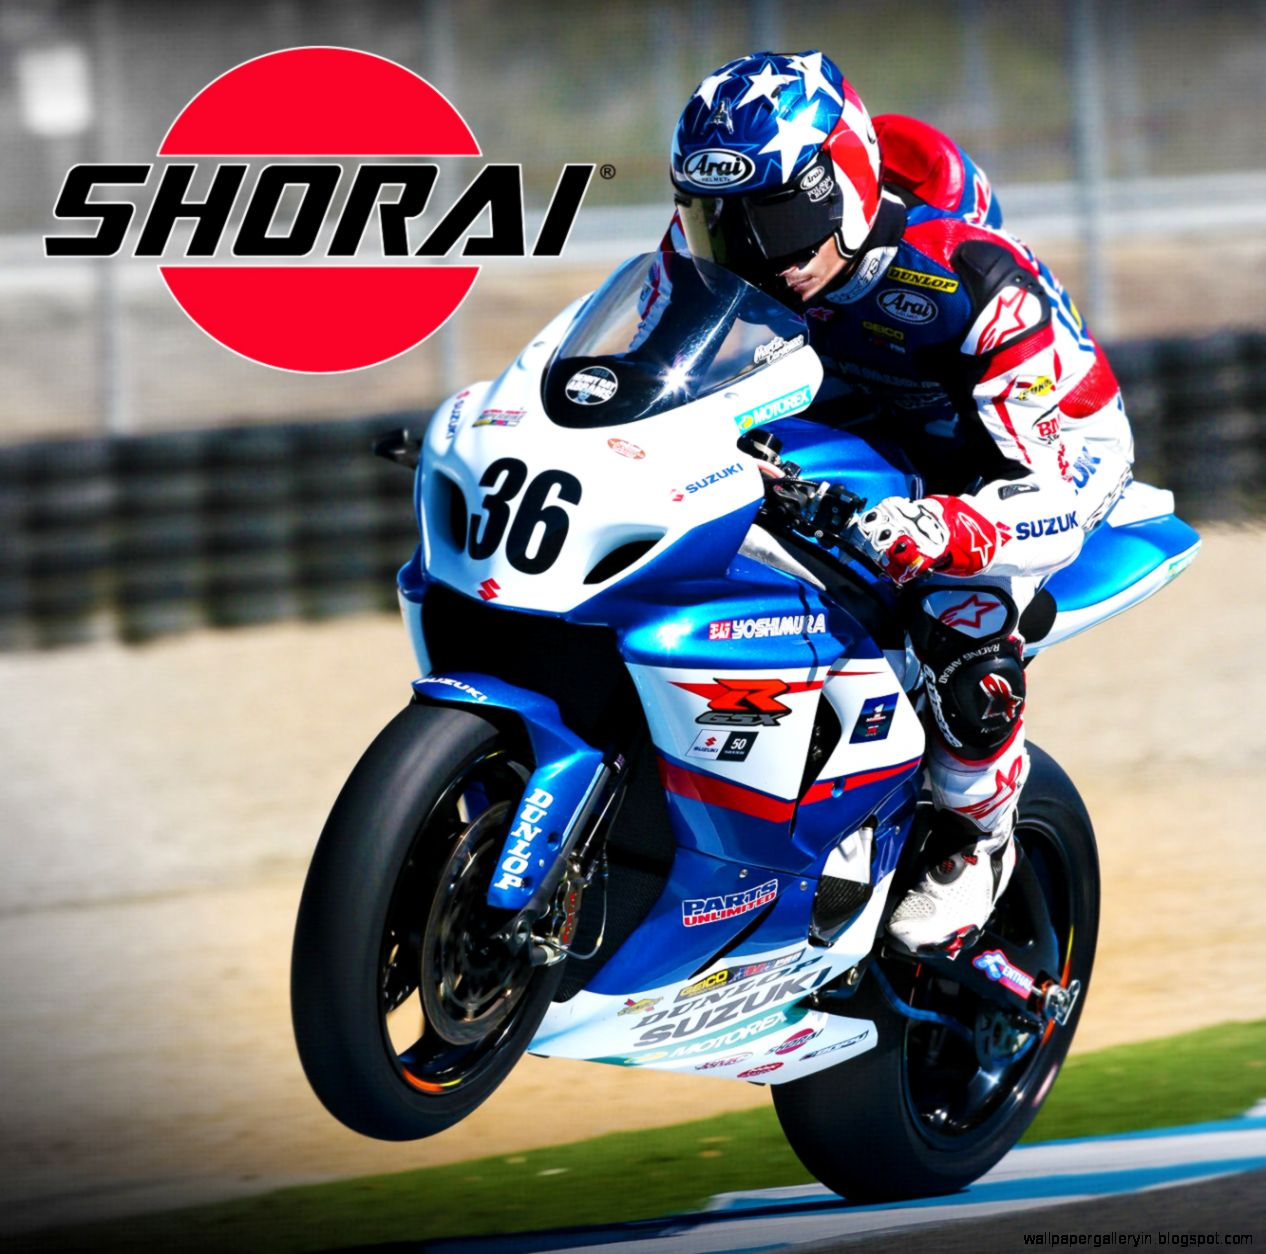 YOSHIMURA SUZUKI FACTORY RACING WRAPS UP SOLID SUPERBIKE SEASON AT